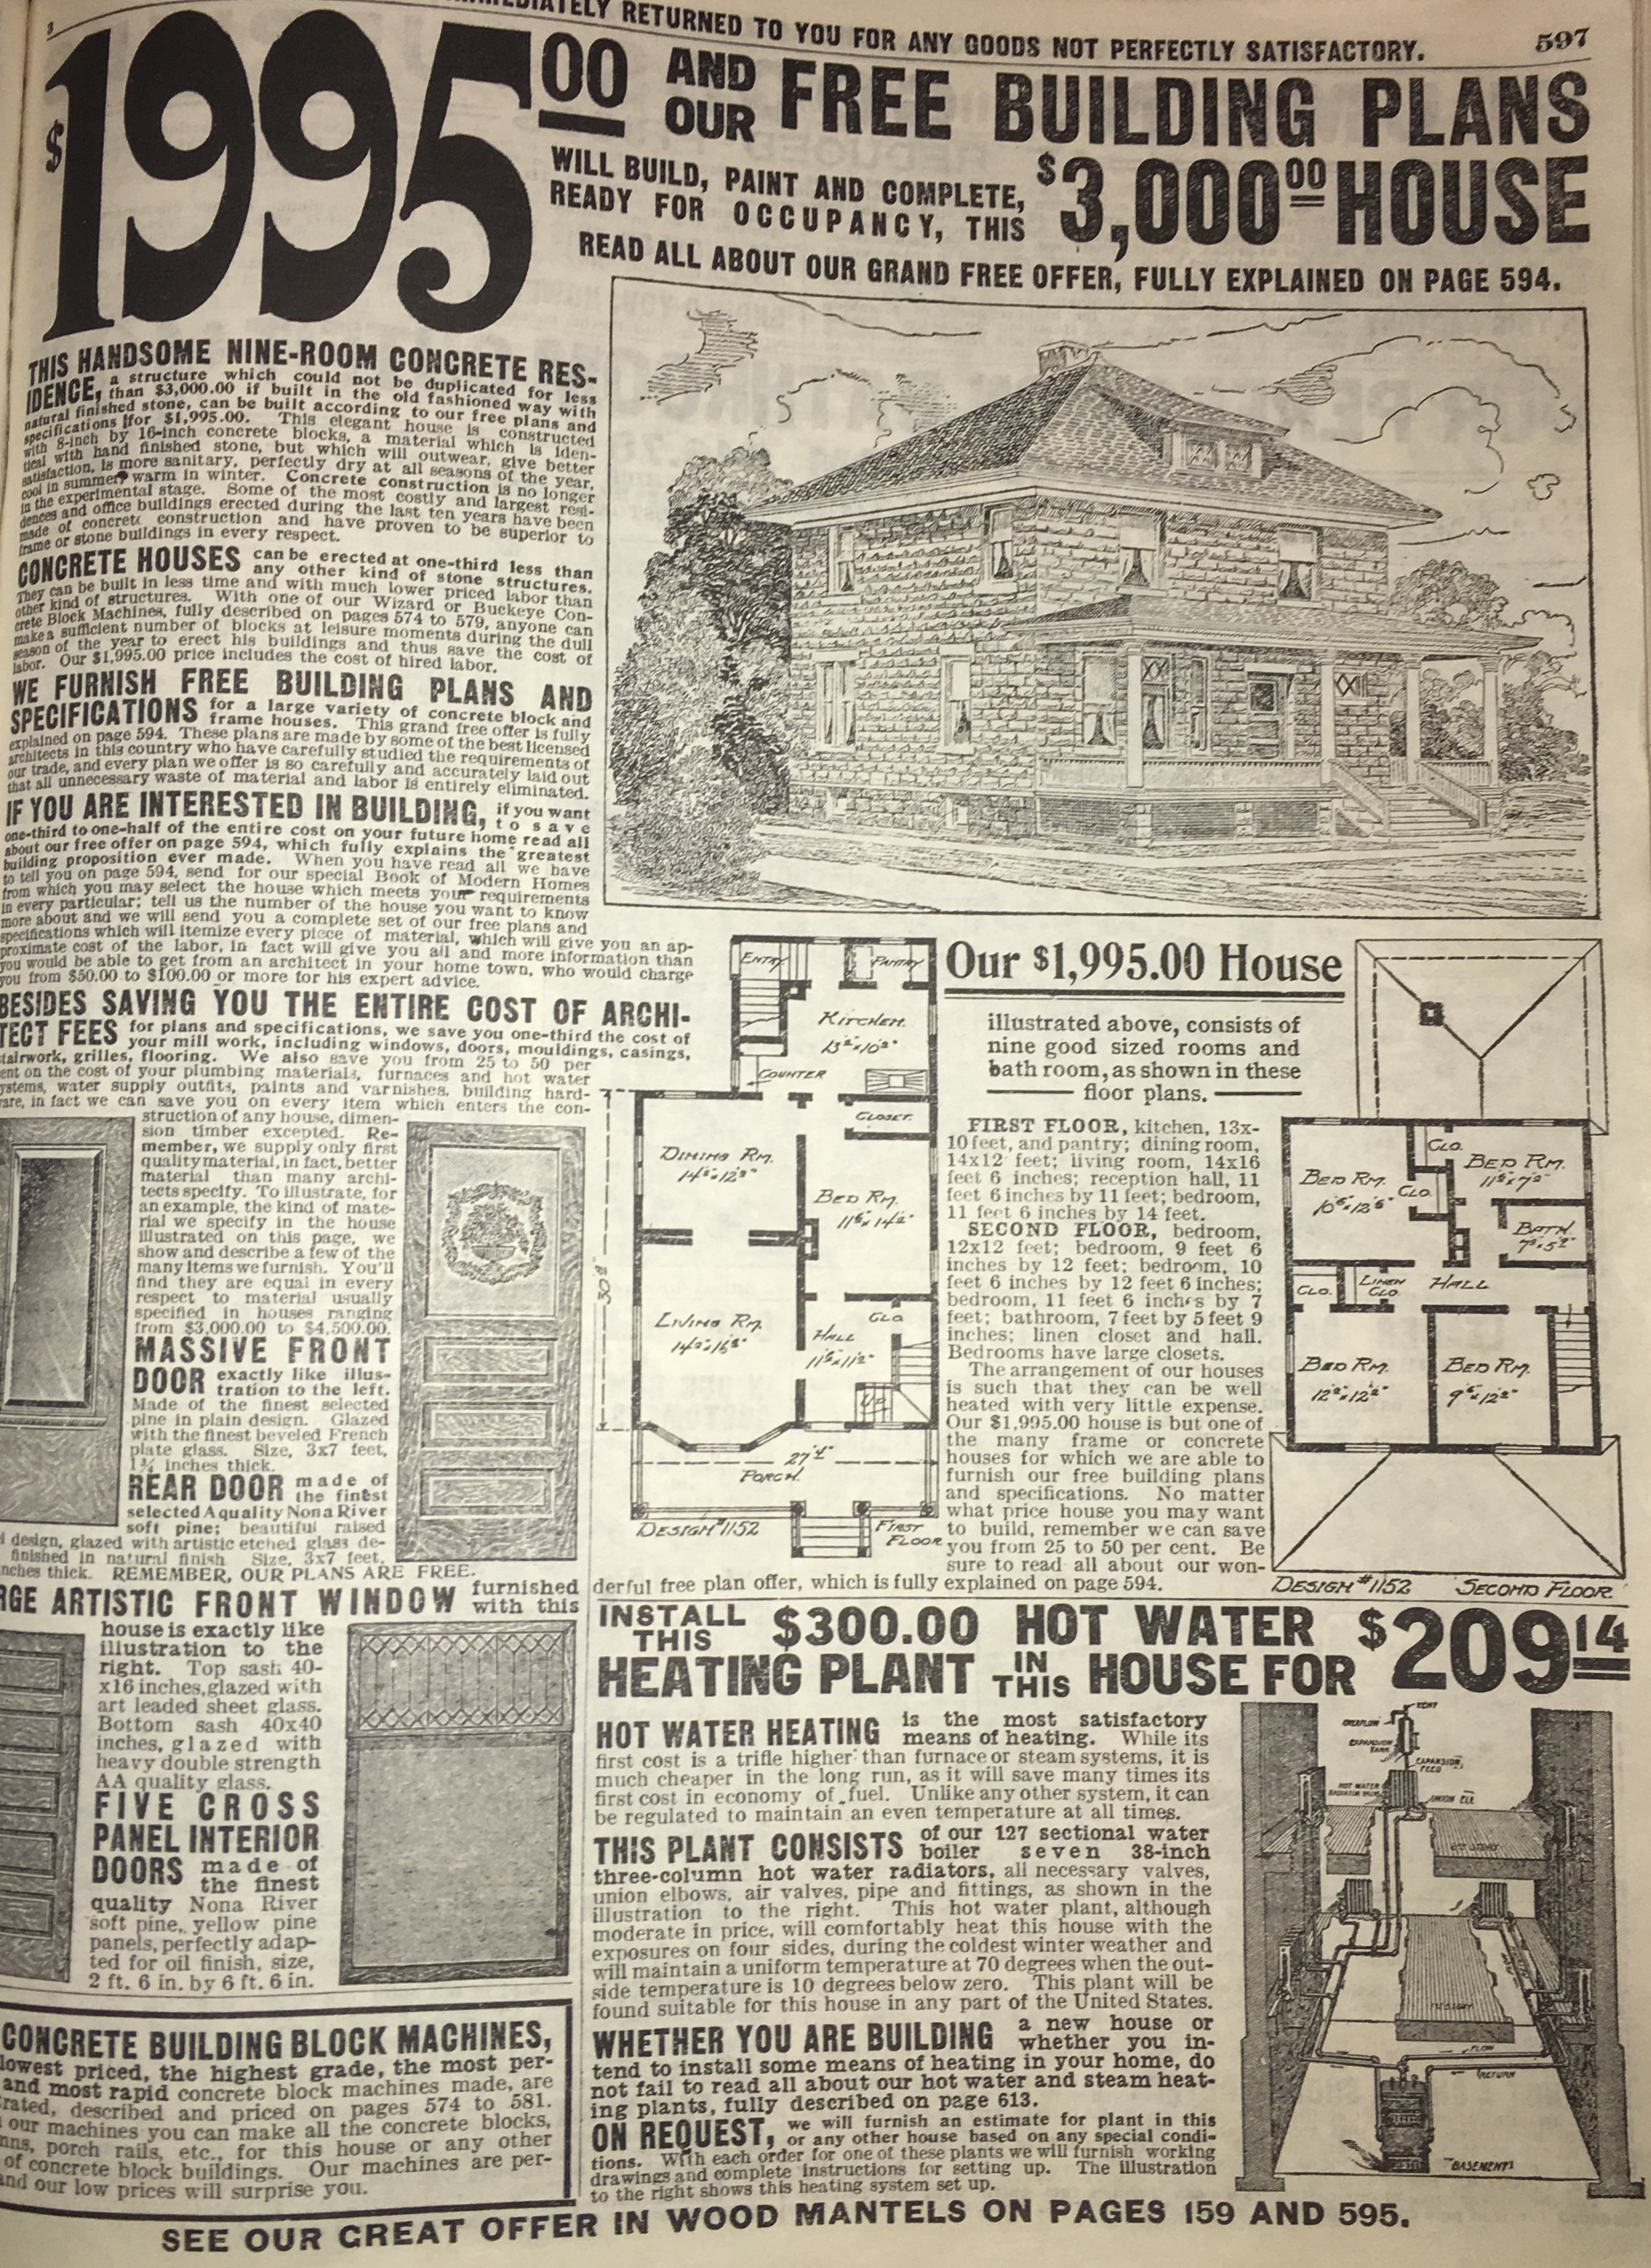 Mail order catalogs, such as Montgomery Ward and Sears and Roebuck, made a wide range of products available to consumers, even houses.